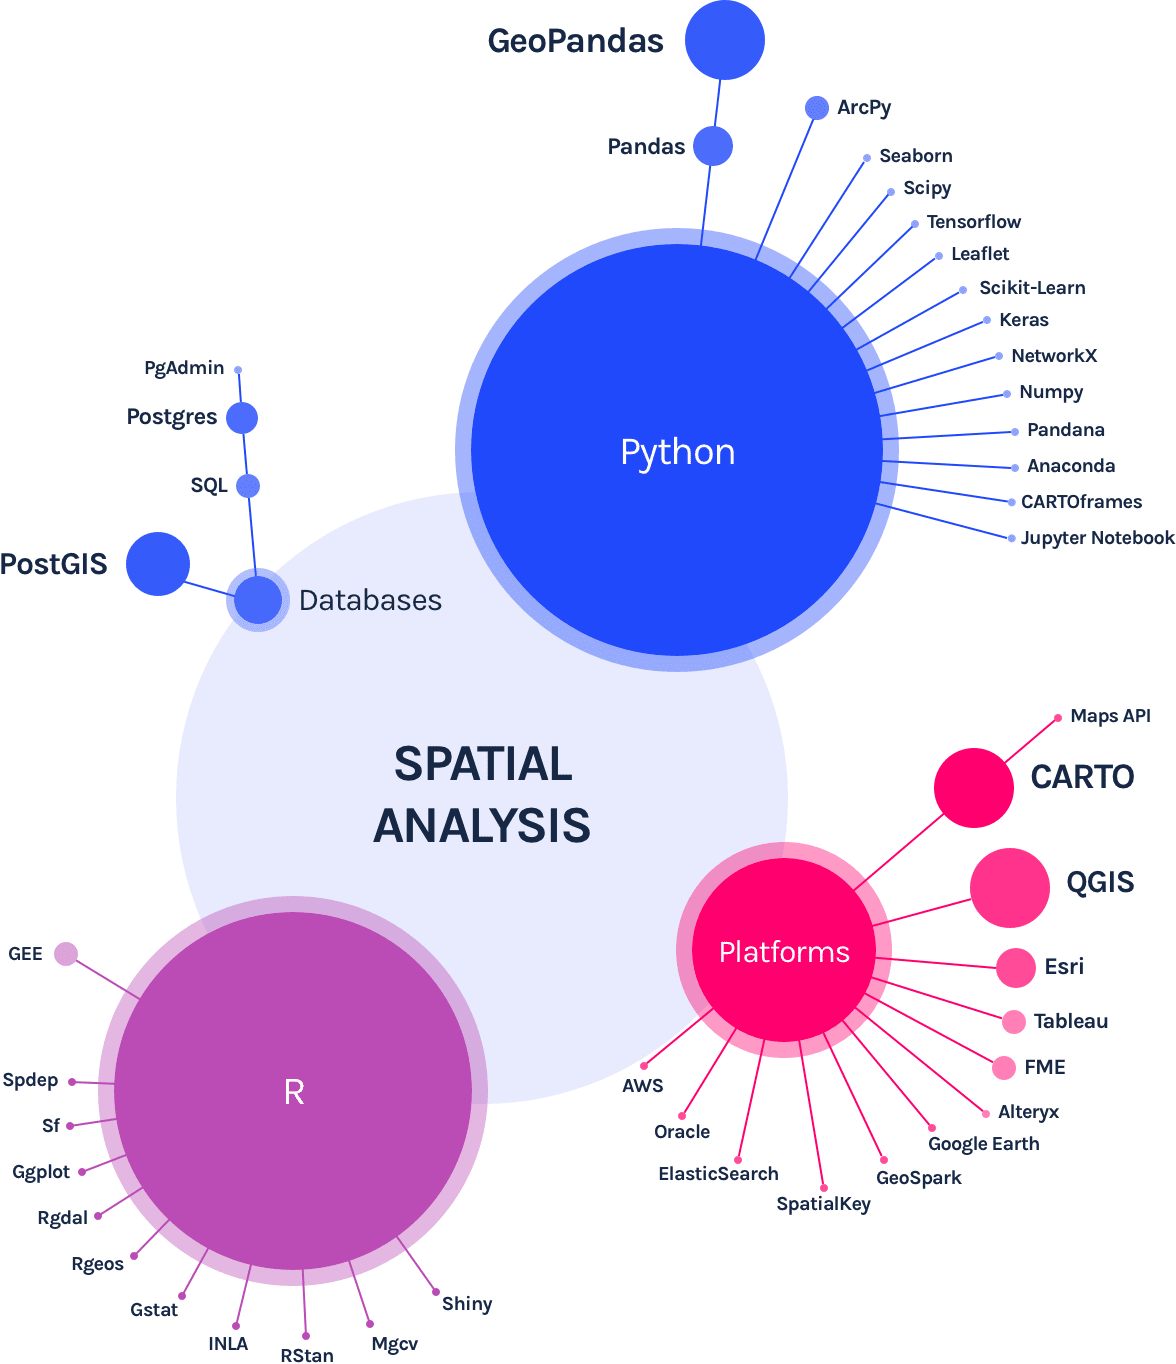 Spatial Analysis tools and languages